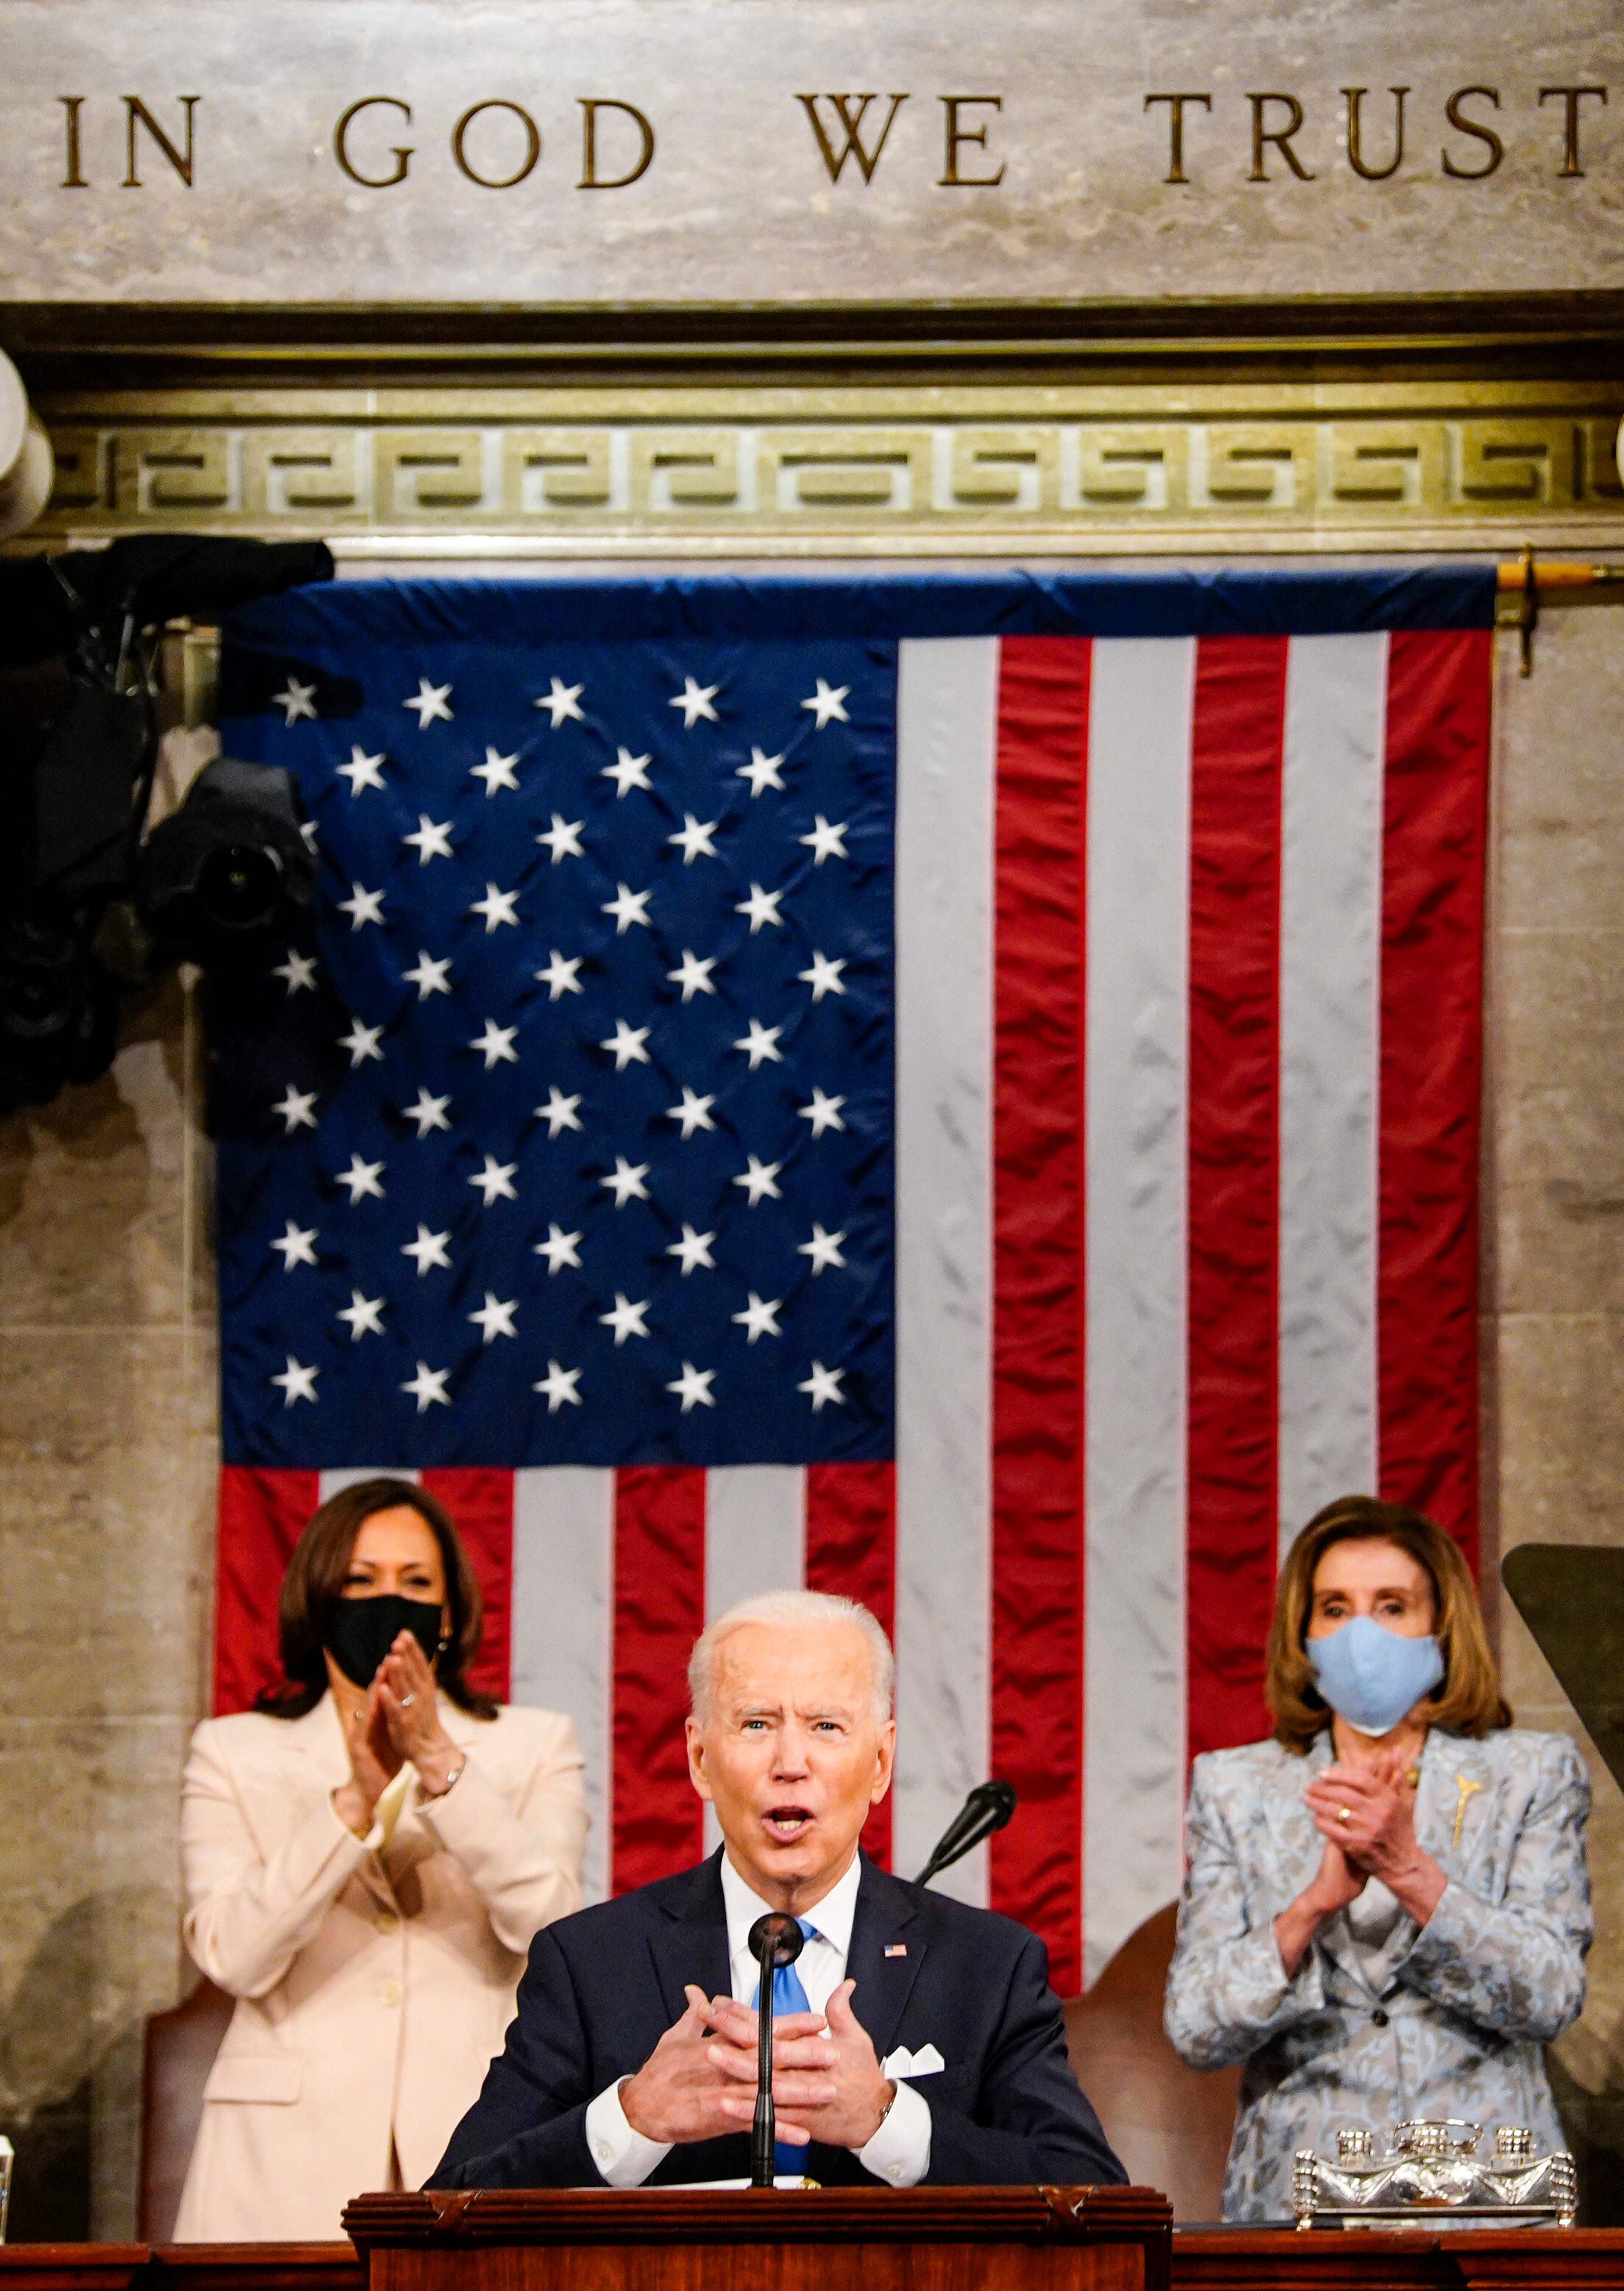 Fact check: Image falsely claims to show Harris and Pelosi sleeping during Biden s speech to Congress